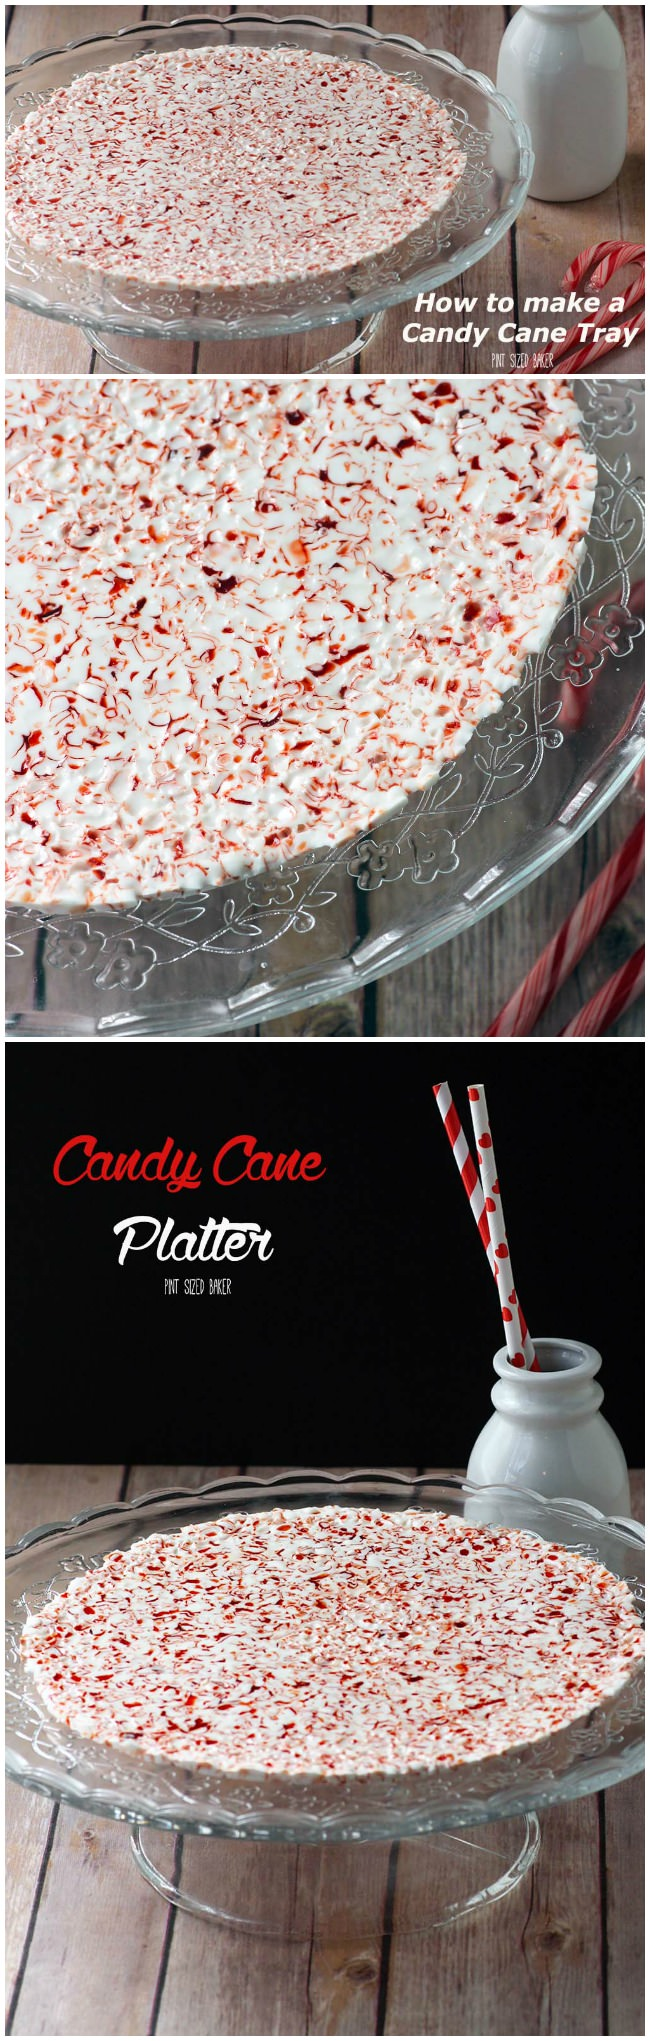 Learn how to make an easy Candy Cane Tray for your holiday treats!